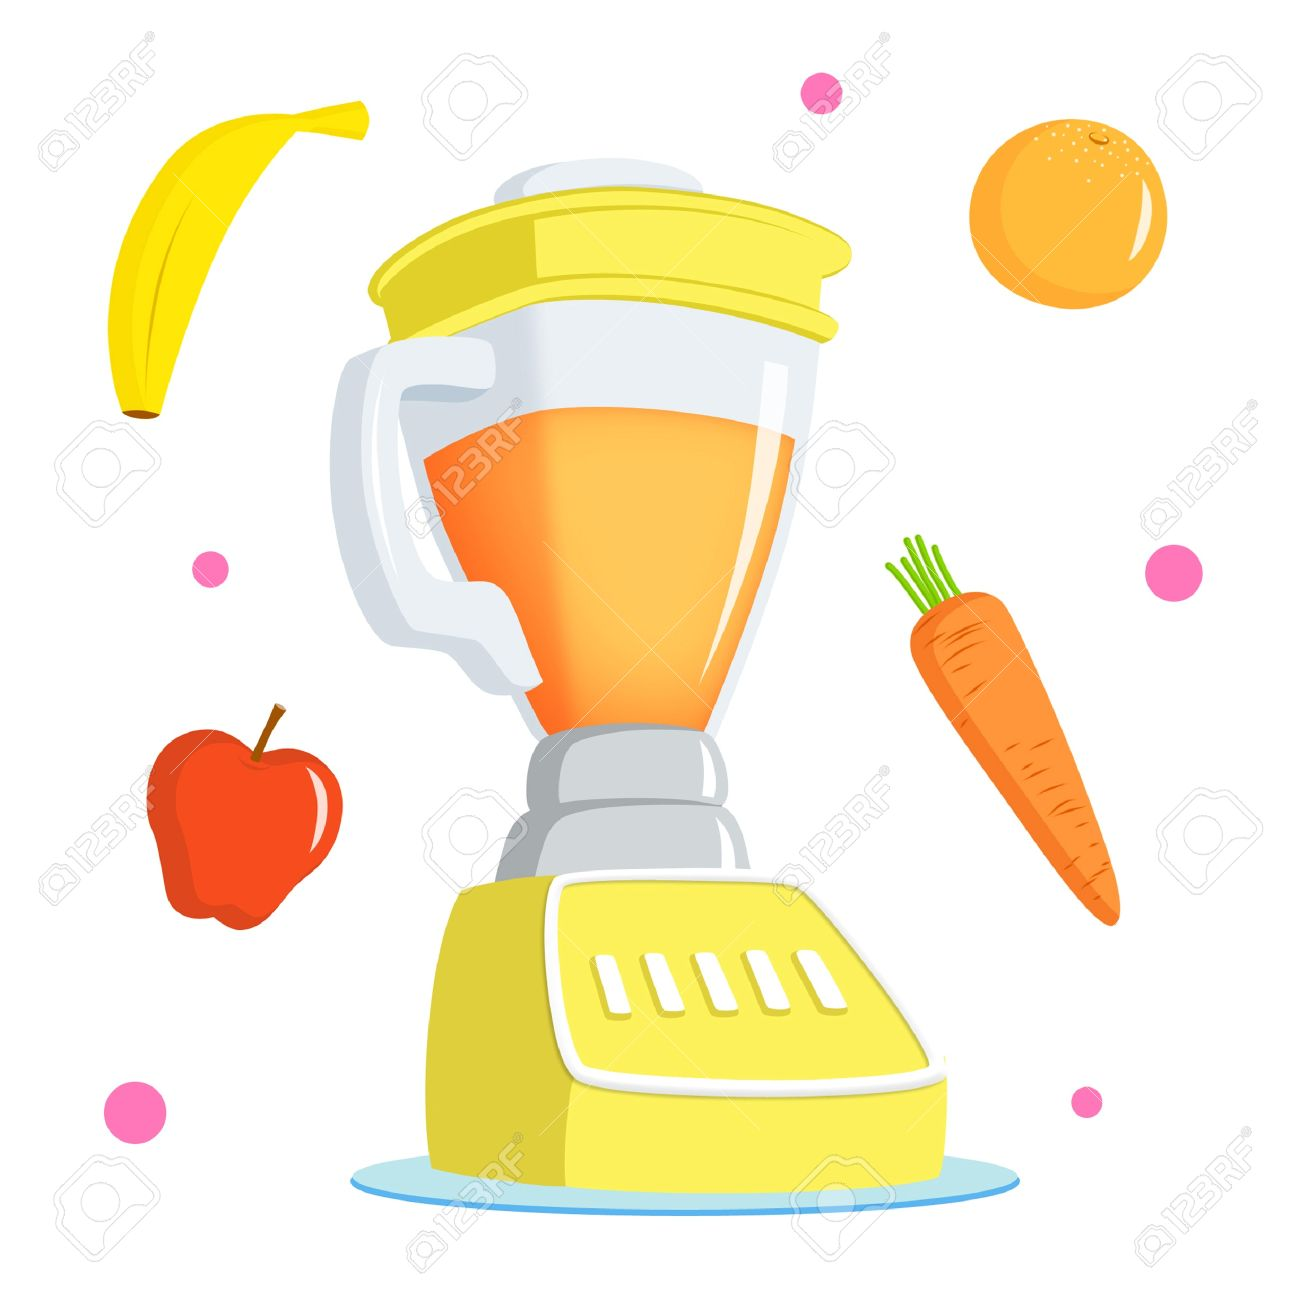 Juice blender with banana, apple, orange and carrot. - 9739179